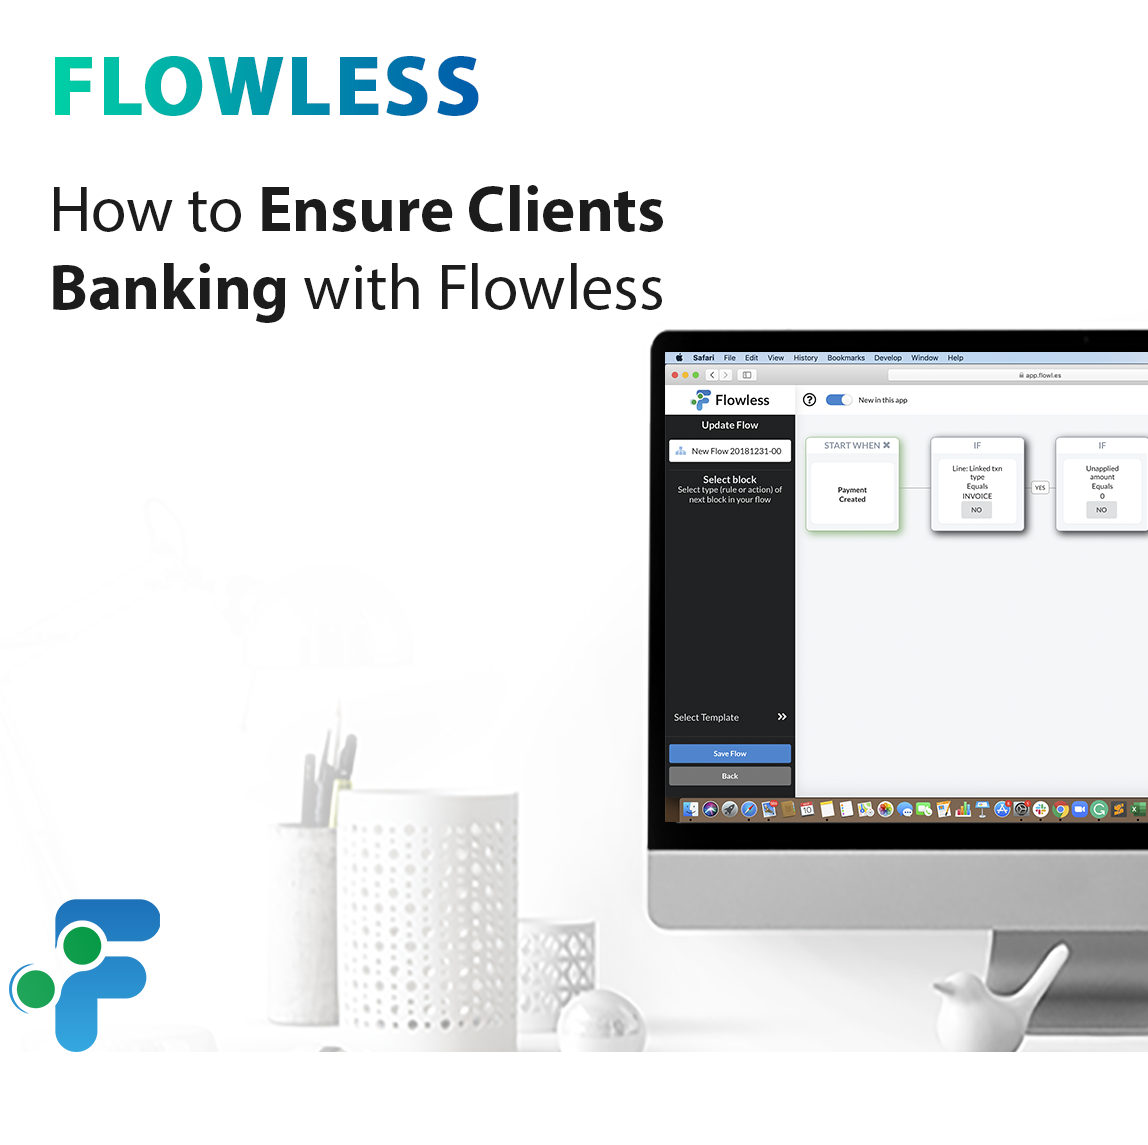 ensure clients banking